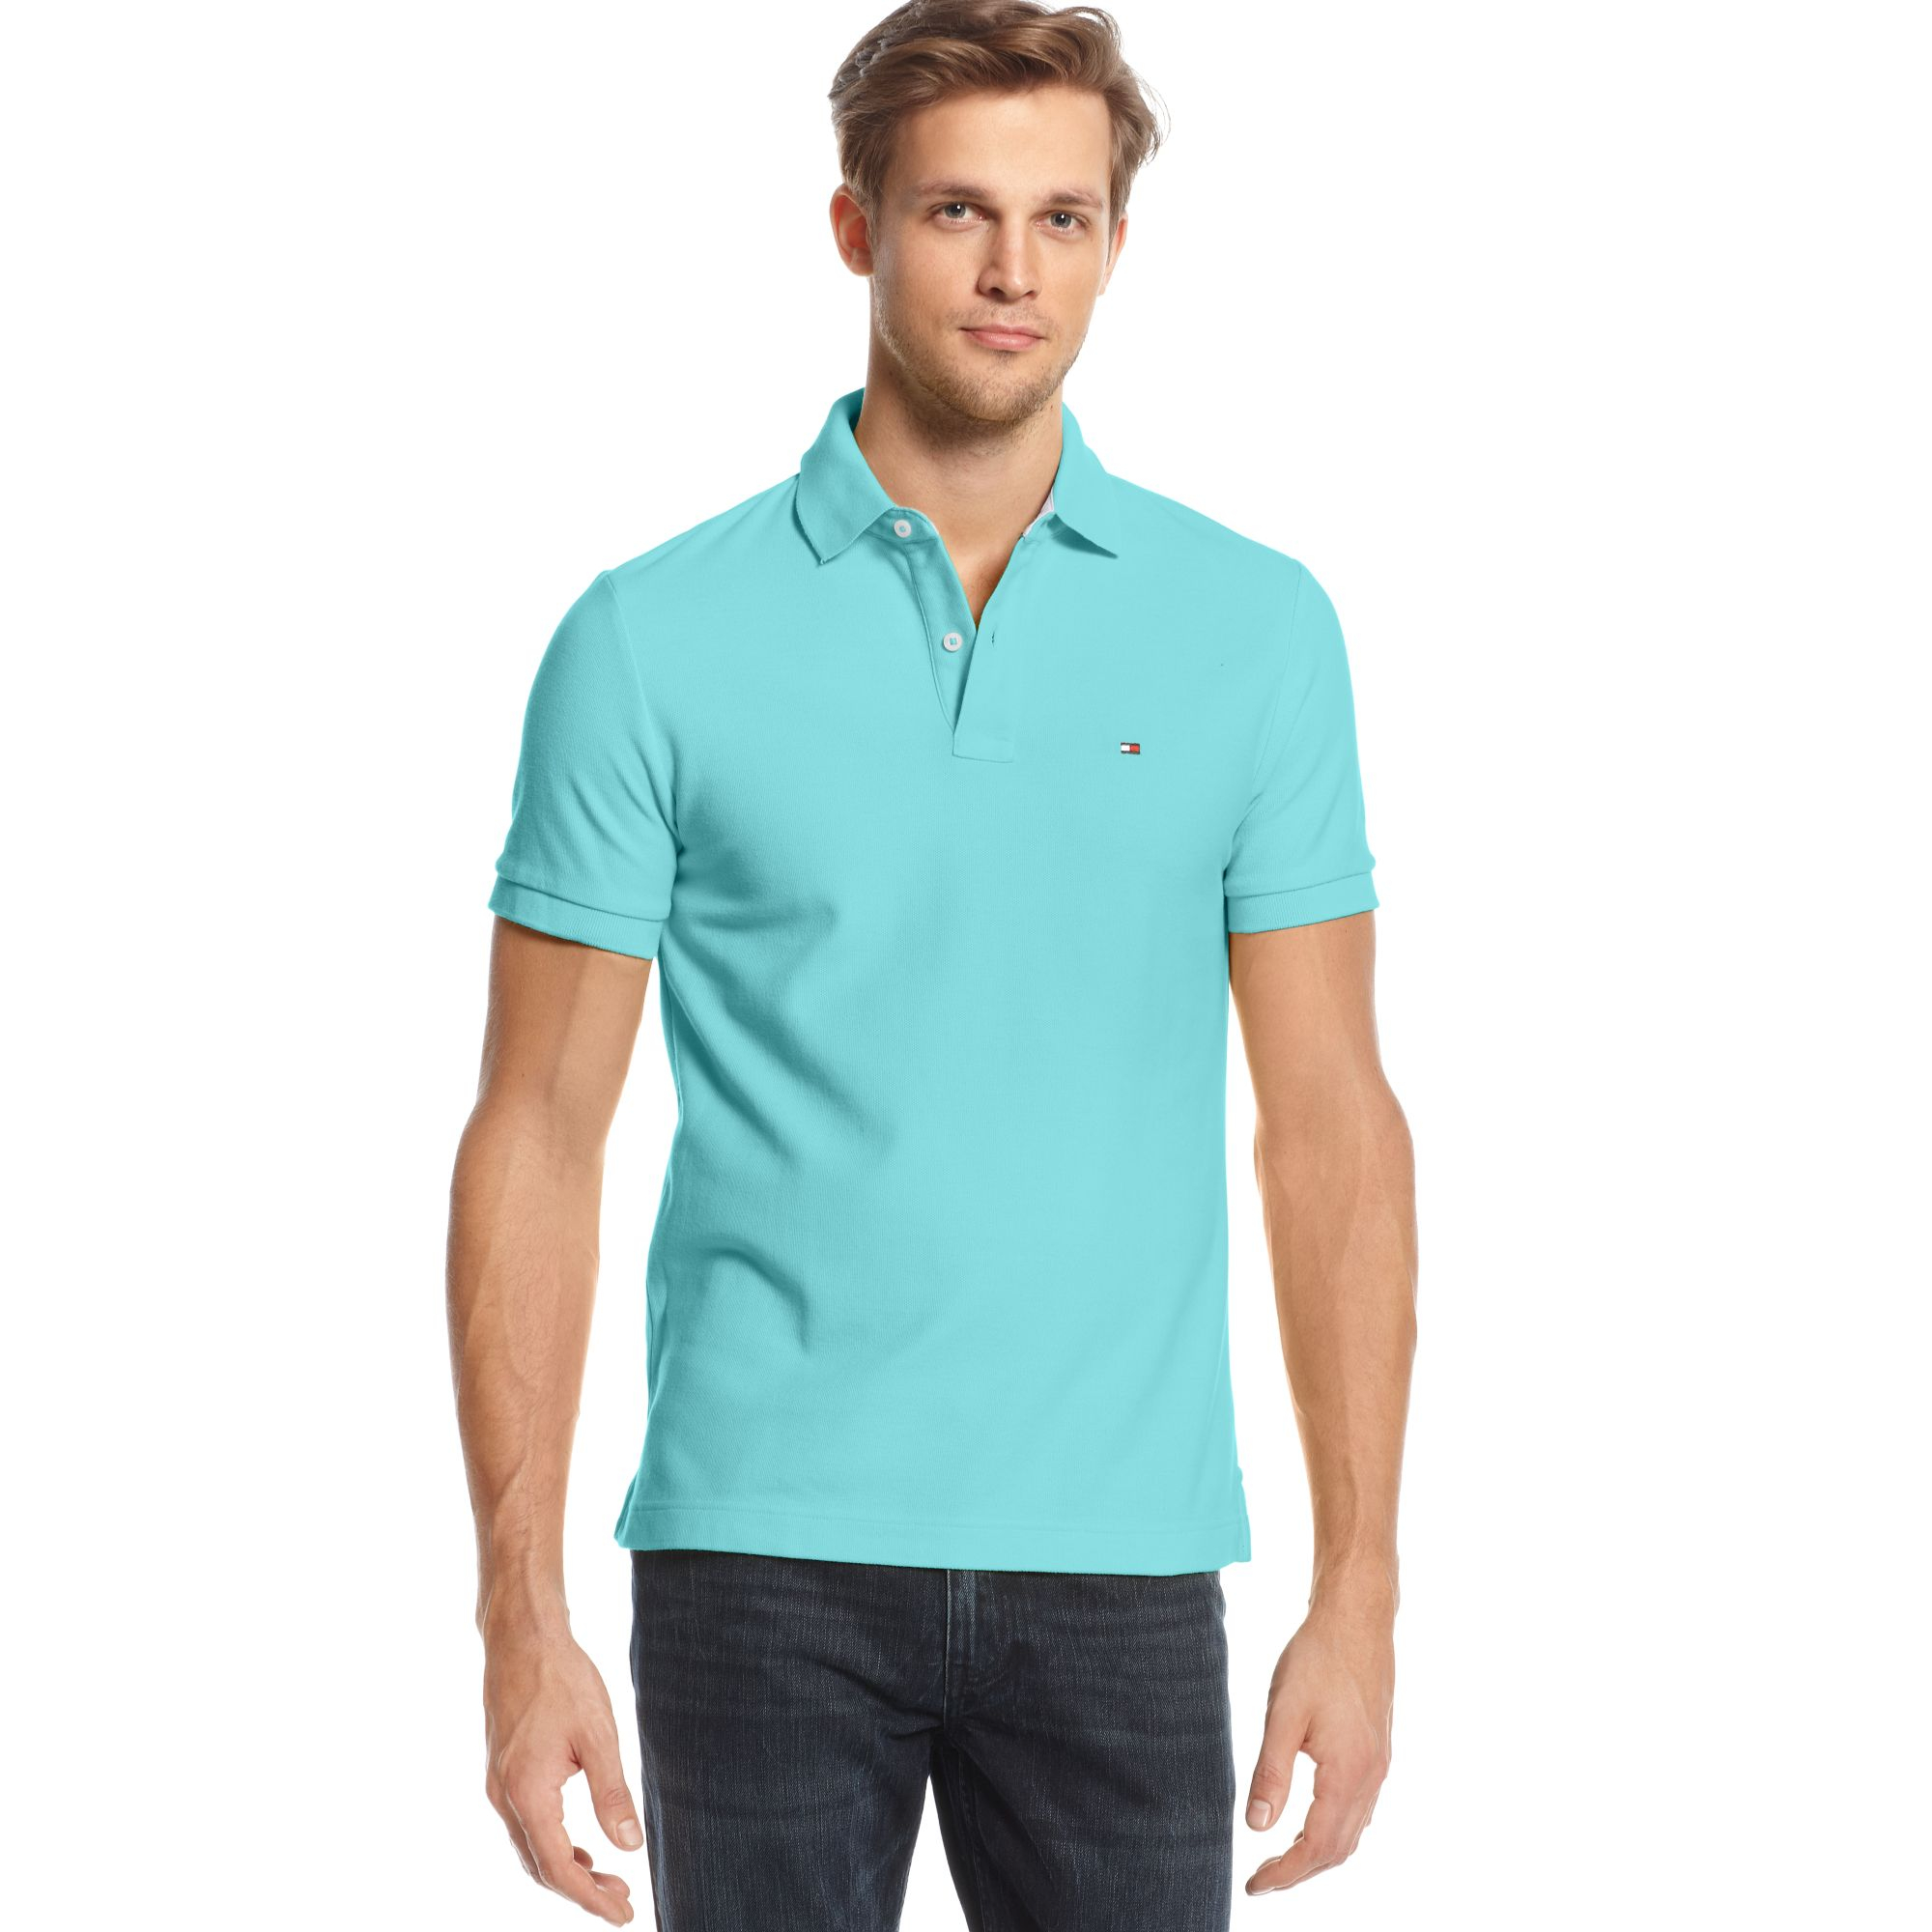 78c22673bb4fc Lyst - Tommy Hilfiger Slim-fit Ivy Polo Shirt in Blue for Men